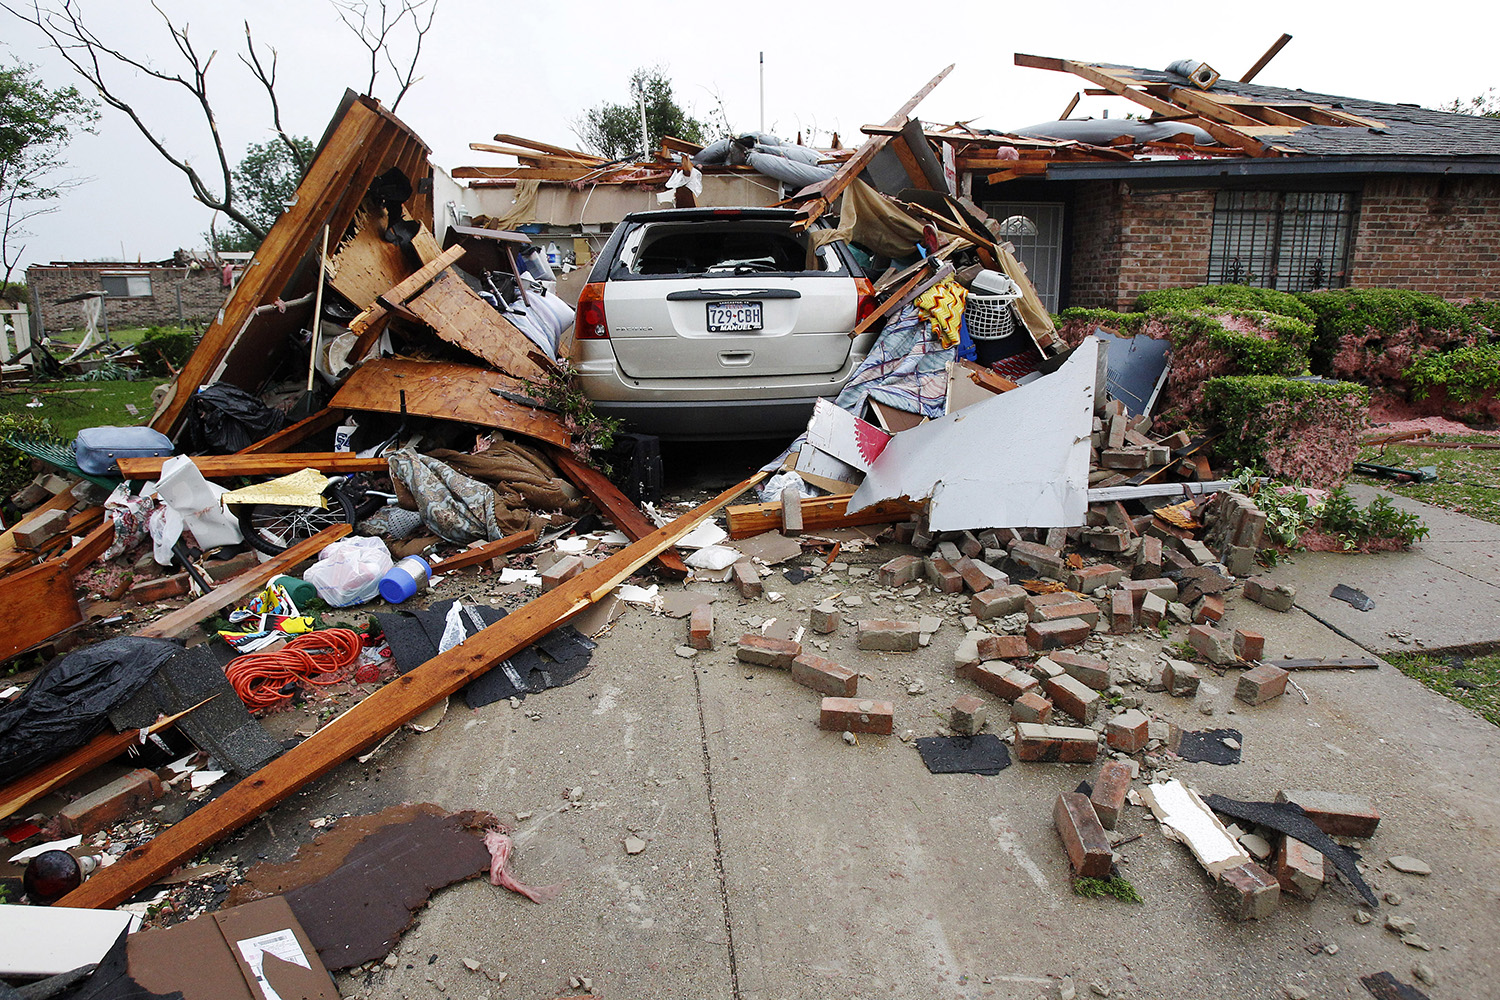 A vehicle rests in the driveway of a home destroyed by a series of tornadoes ripping through the Dallas suburb of Lancaster on April 3, 2012. Up to a dozen tornadoes skipped through the densely populated Dallas-Fort Worth area, ripping apart homes and tossing tractor-trailer trucks into the air, but there were no reports of serious injuries or deaths.